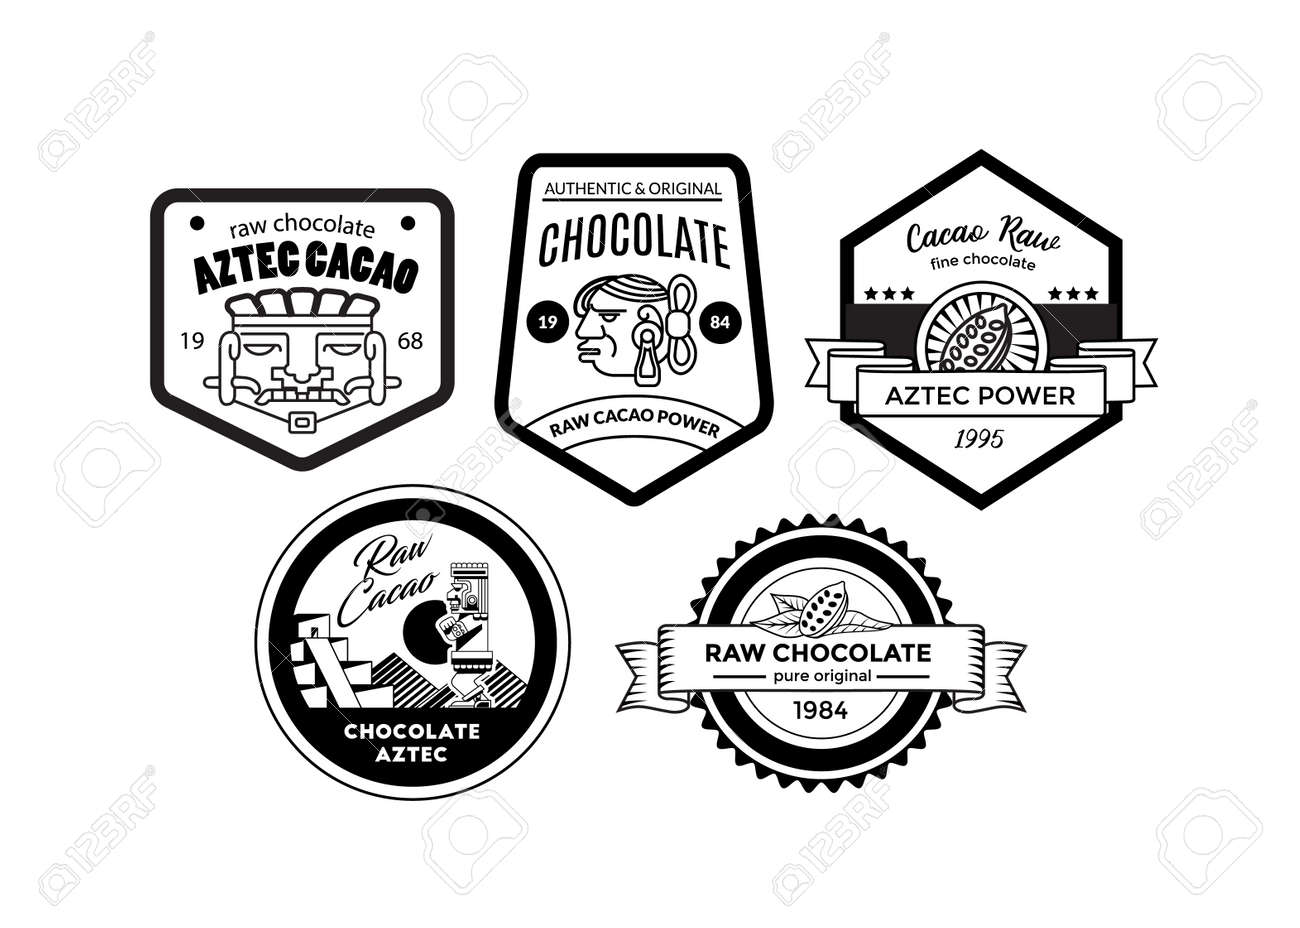 Aztec symbol for power the meaning of this aztec symbol was vector illustration aztec logo collection for chocolate package biocorpaavc Image collections